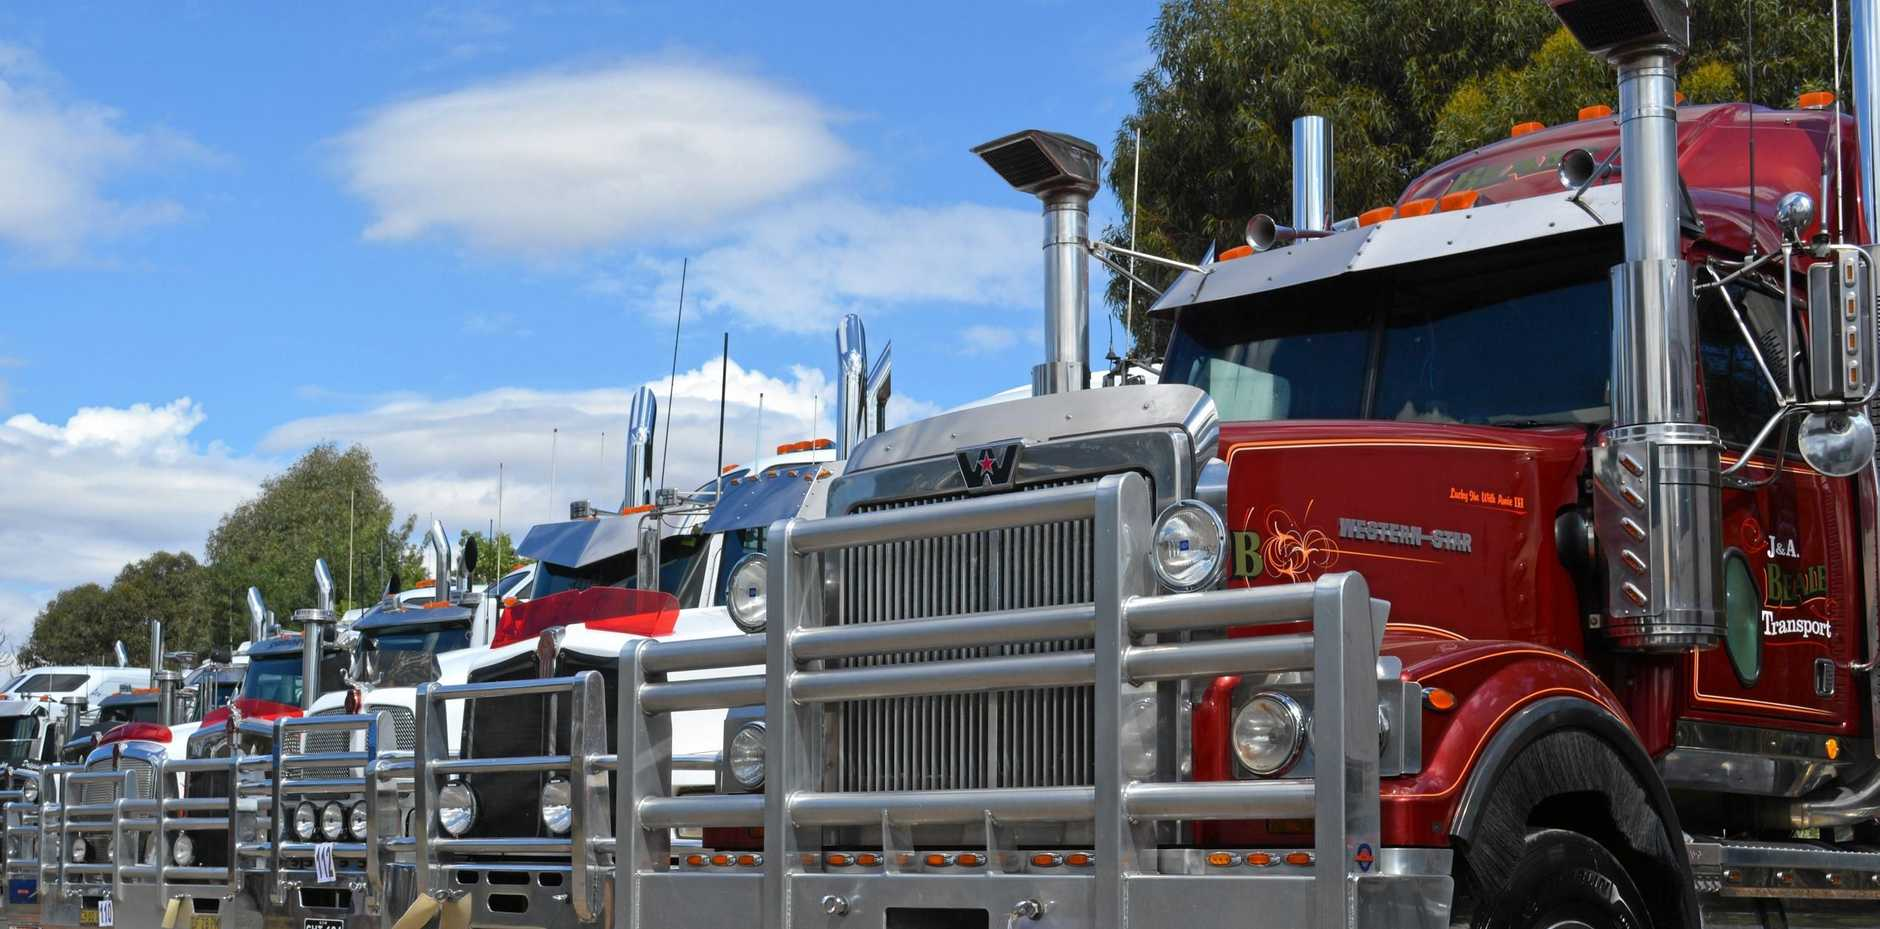 The Oaklands Truck Show always draws a healthy lineup of rigs